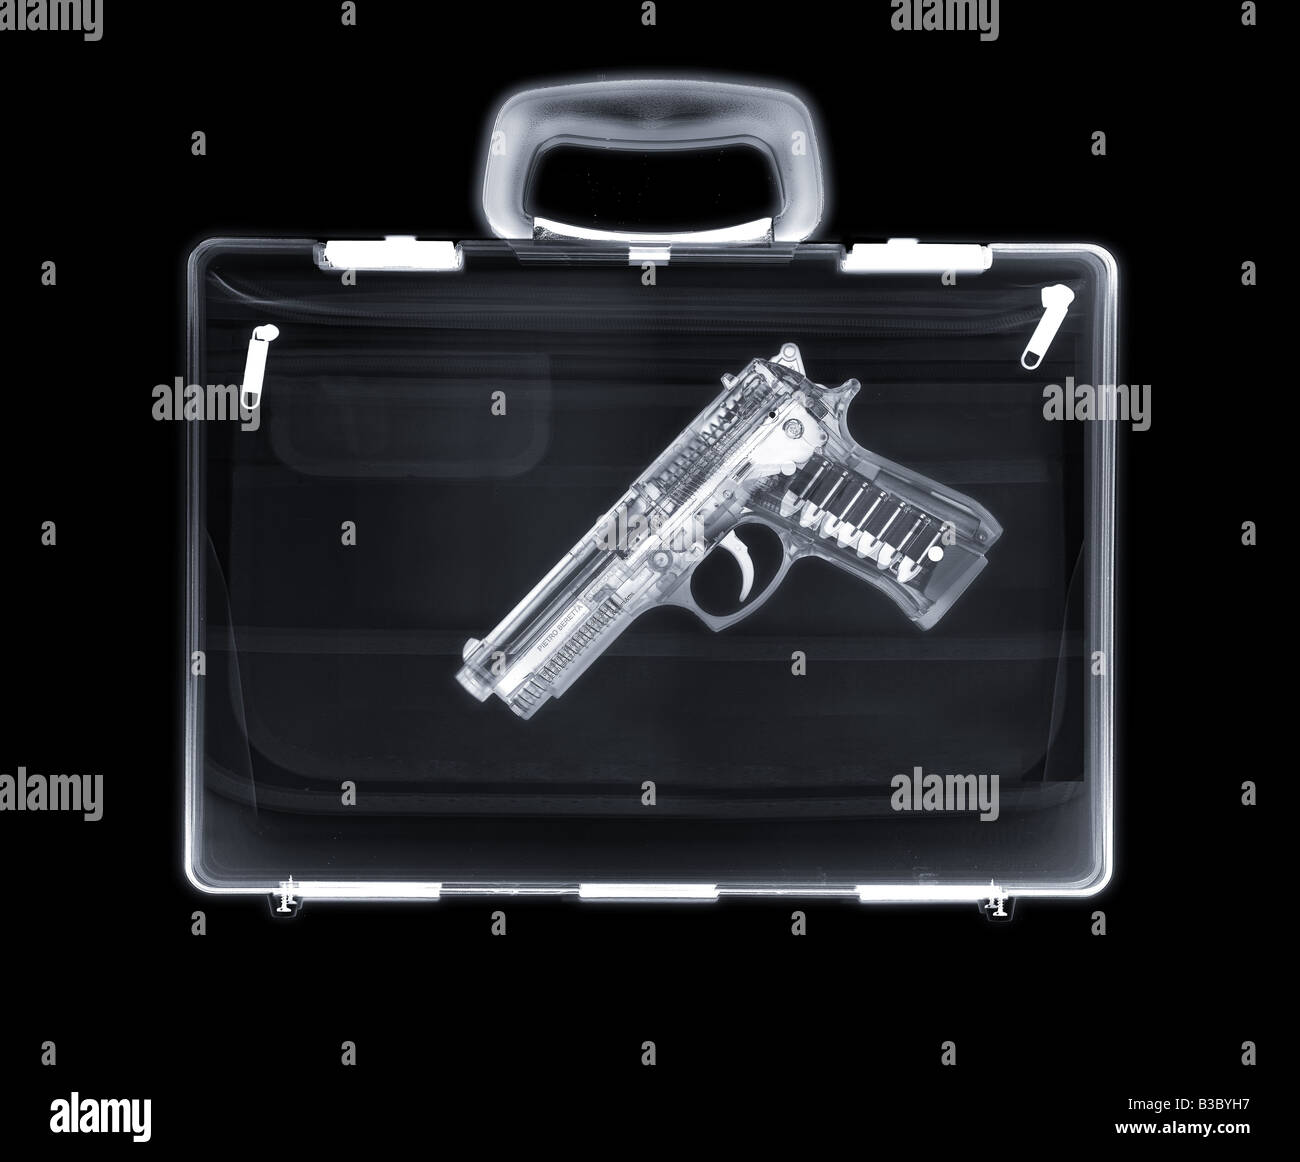 X-ray of a bag containing a gun Stock Photo